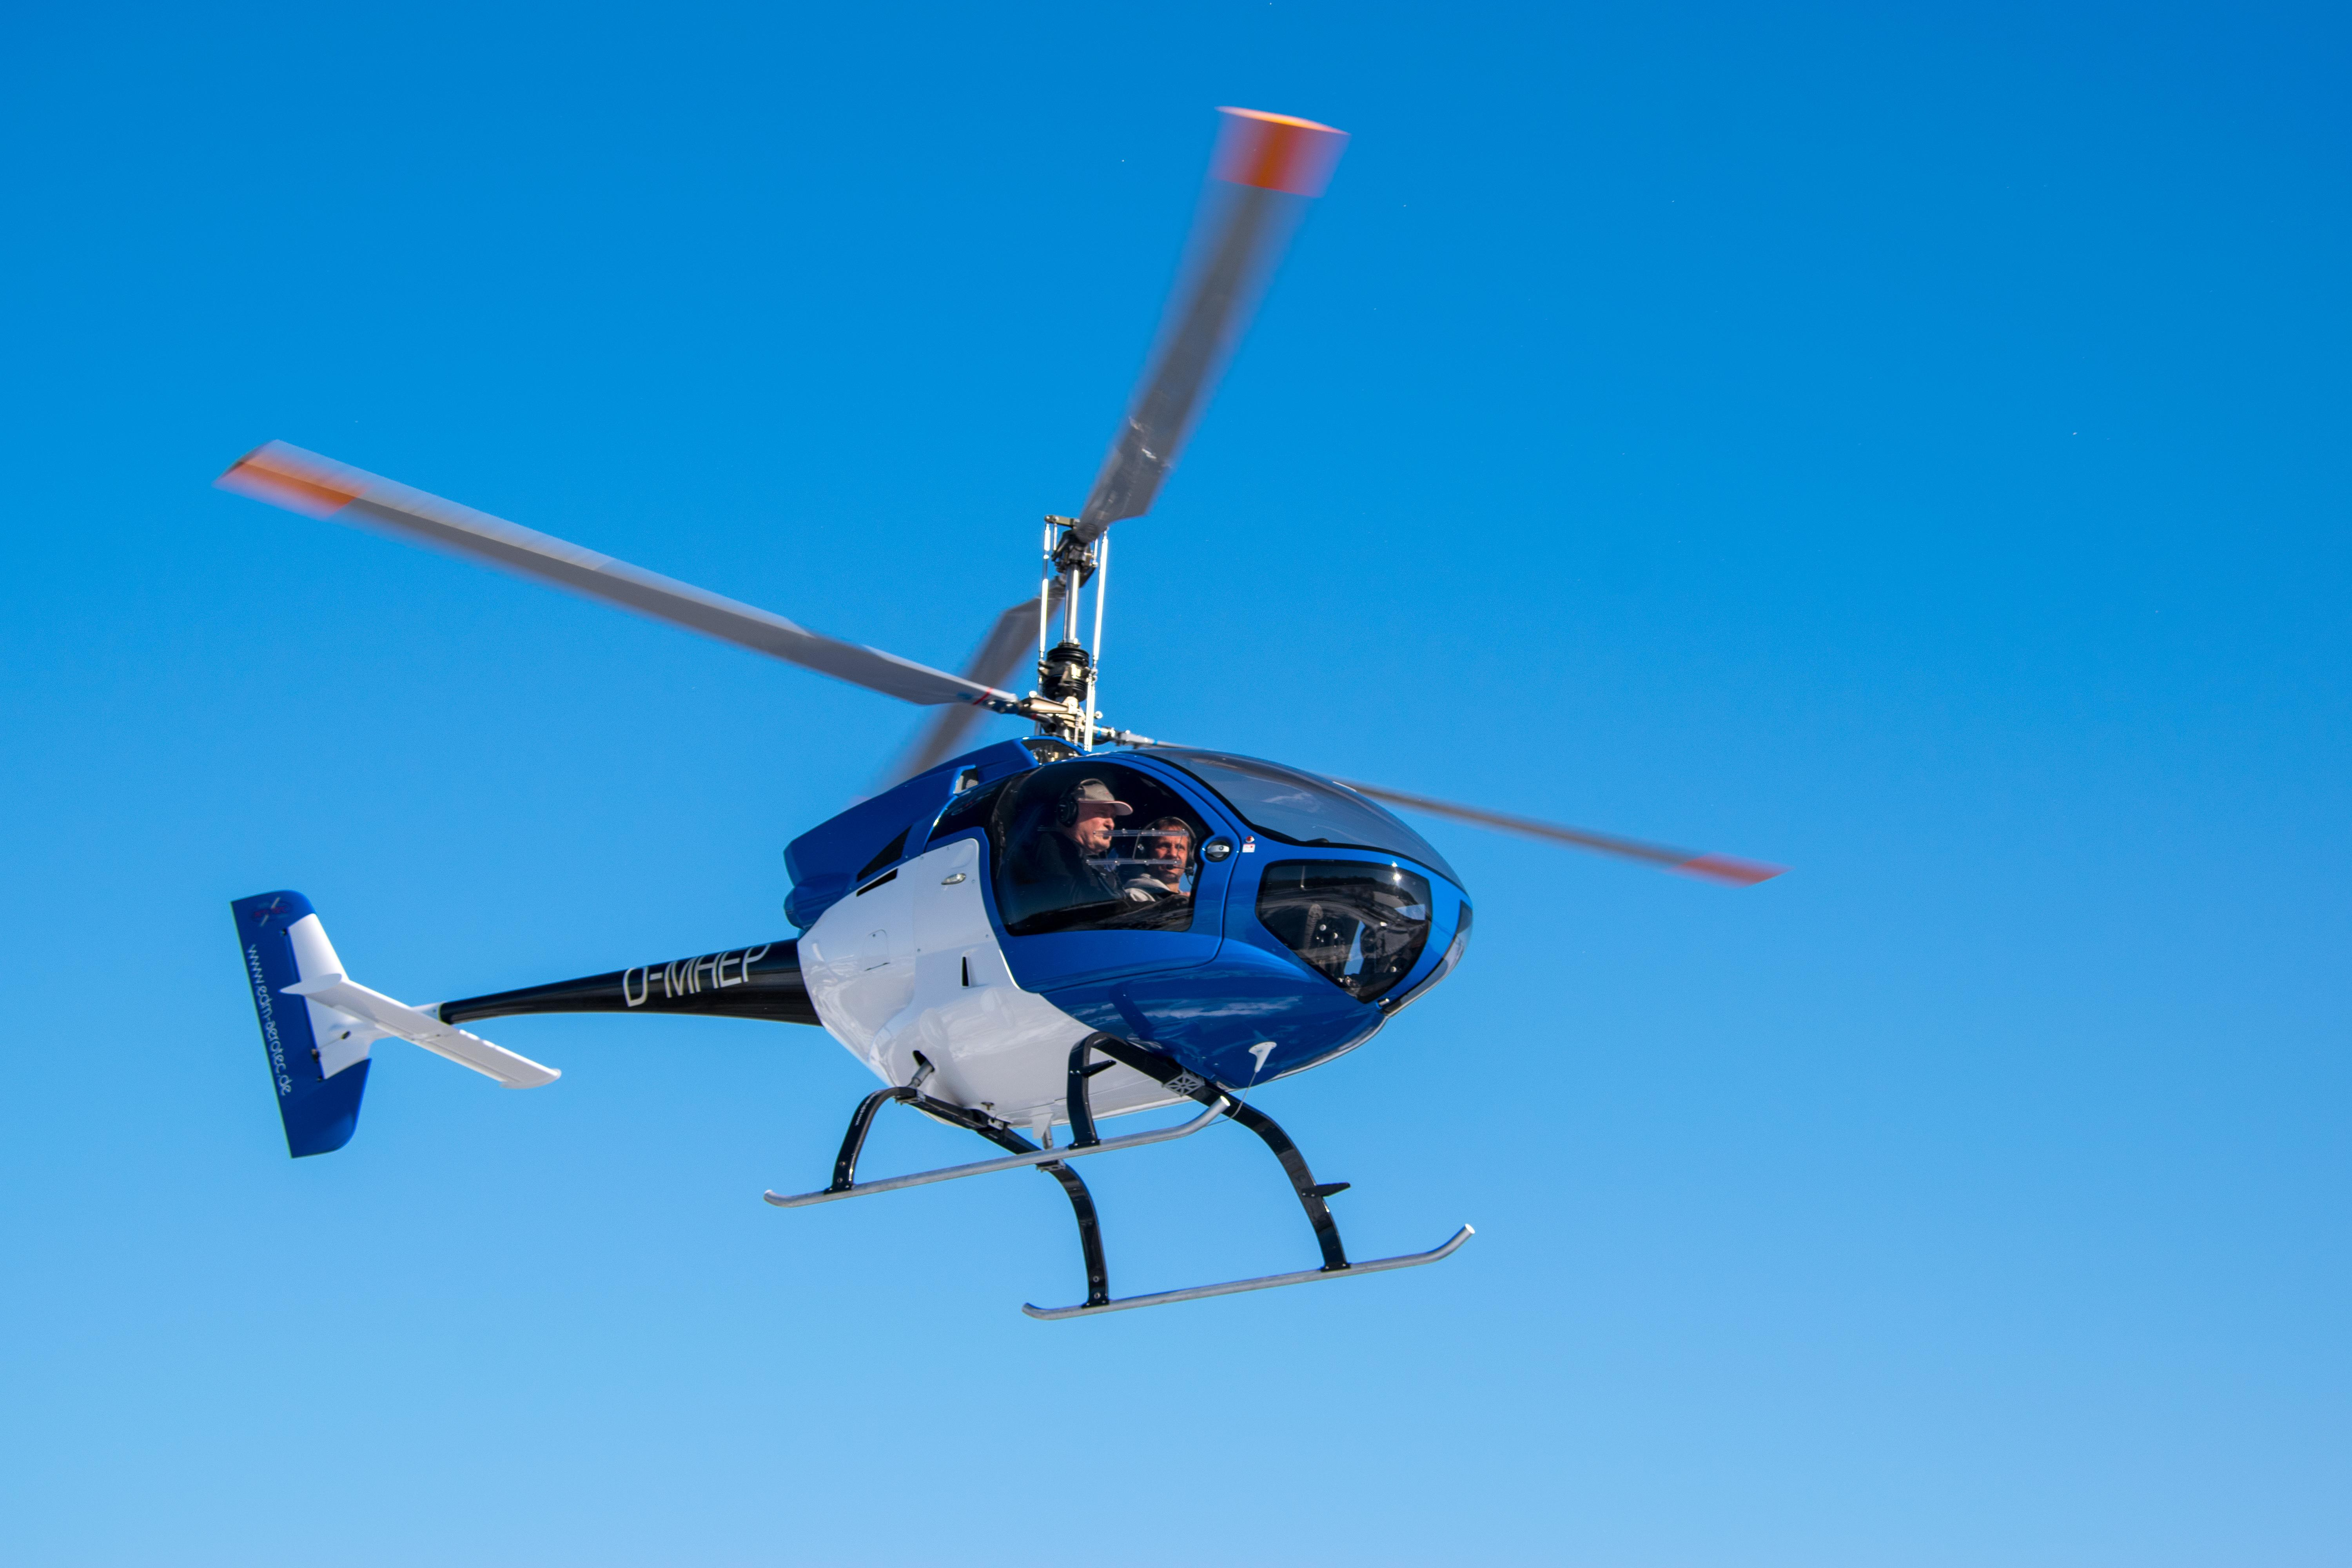 edm aerotec GmbH has developed and launched an ultralight helicopter that establishes a completely new helicopter class